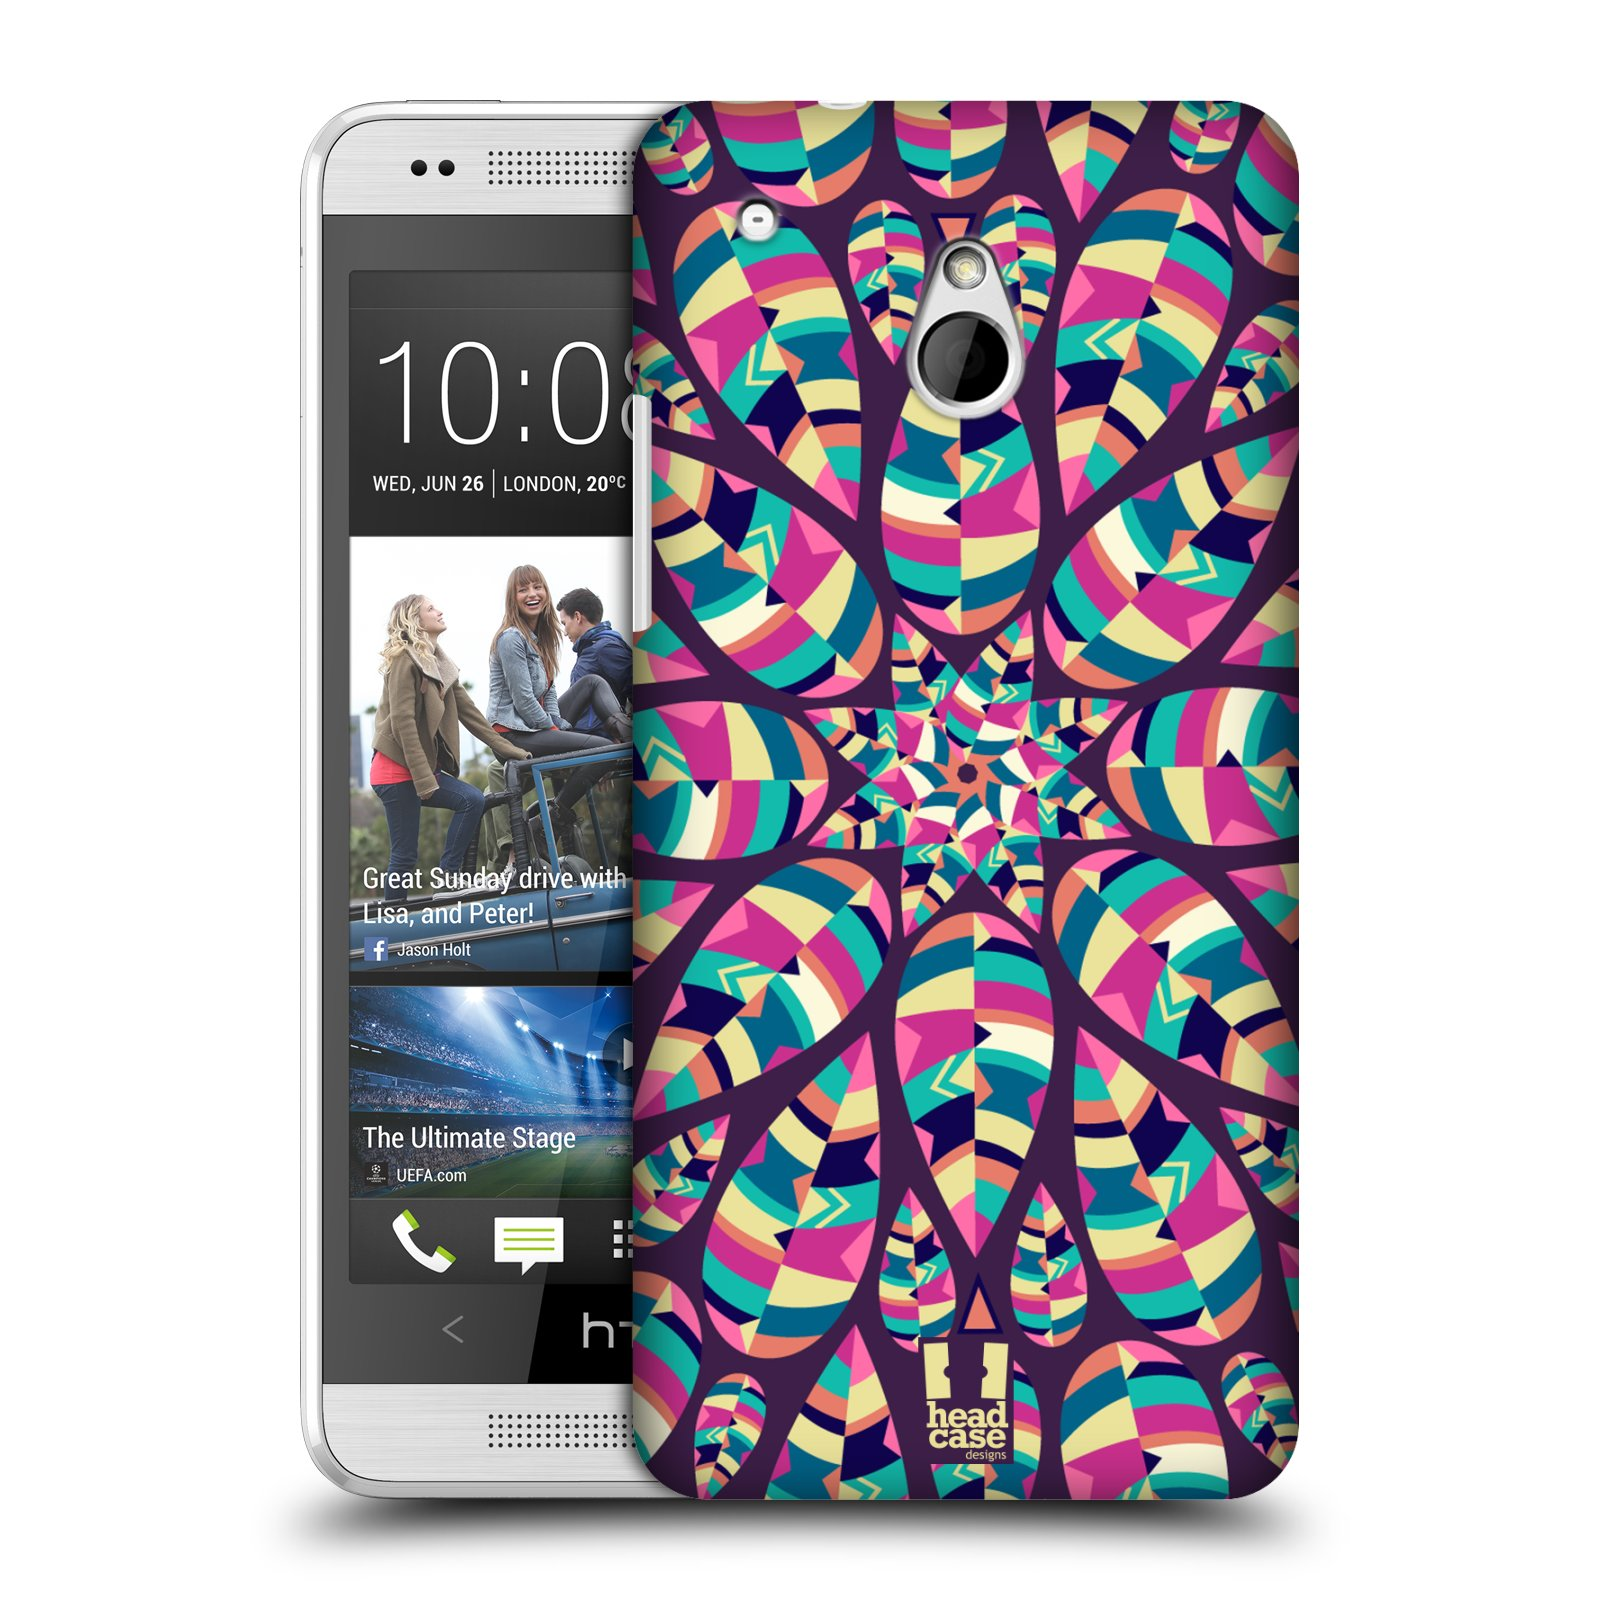 HEAD CASE DESIGNS LEAF PATTERNS 2 CASE COVER FOR HTC ONE MINI